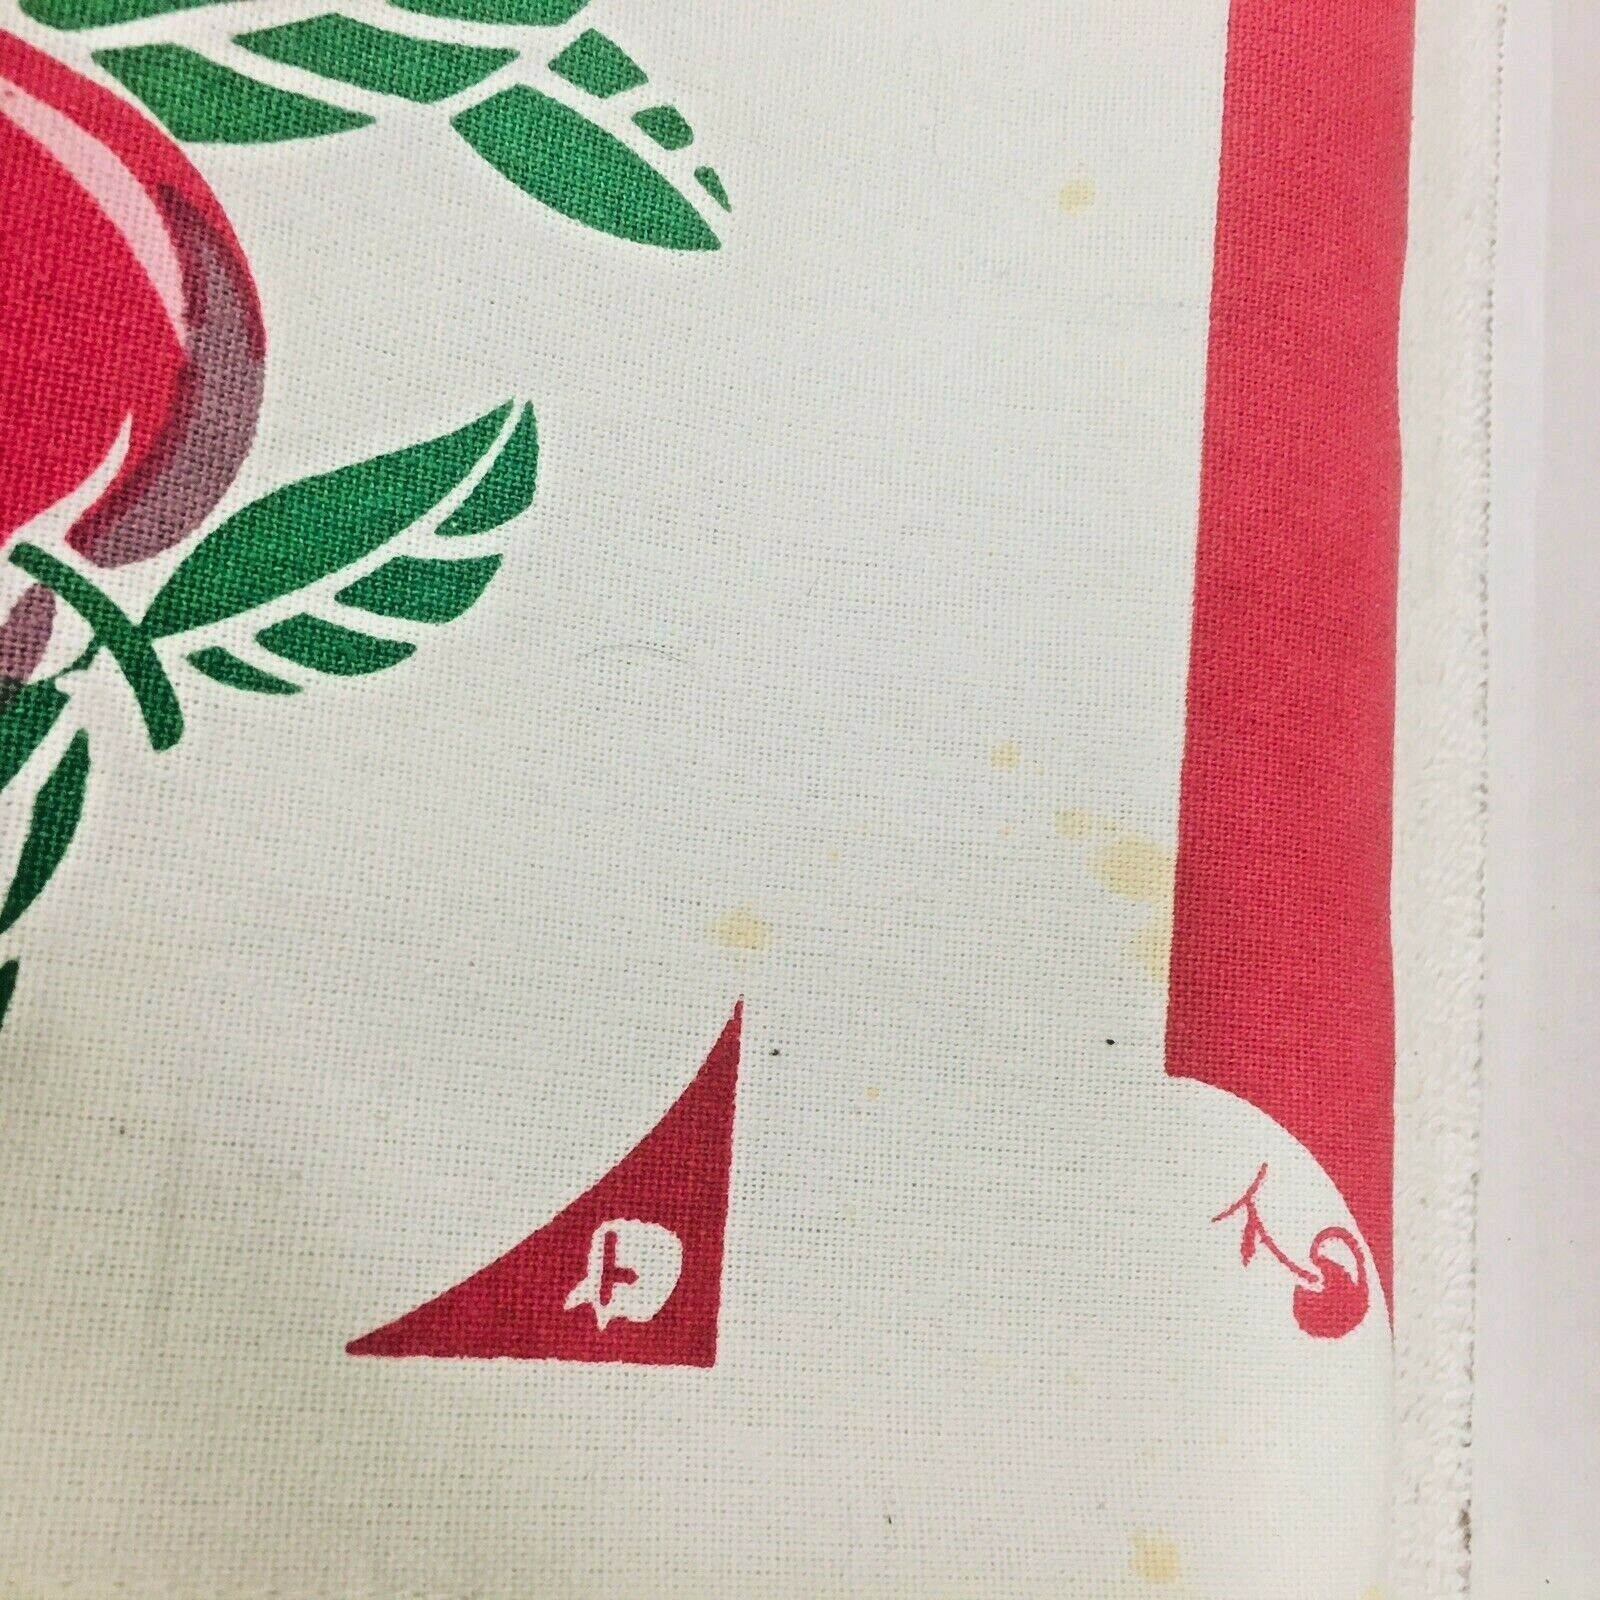 Reproduction Kitchen Toweling Towel Fabric Unsewn Red Cream Green Cherries Apple image 8